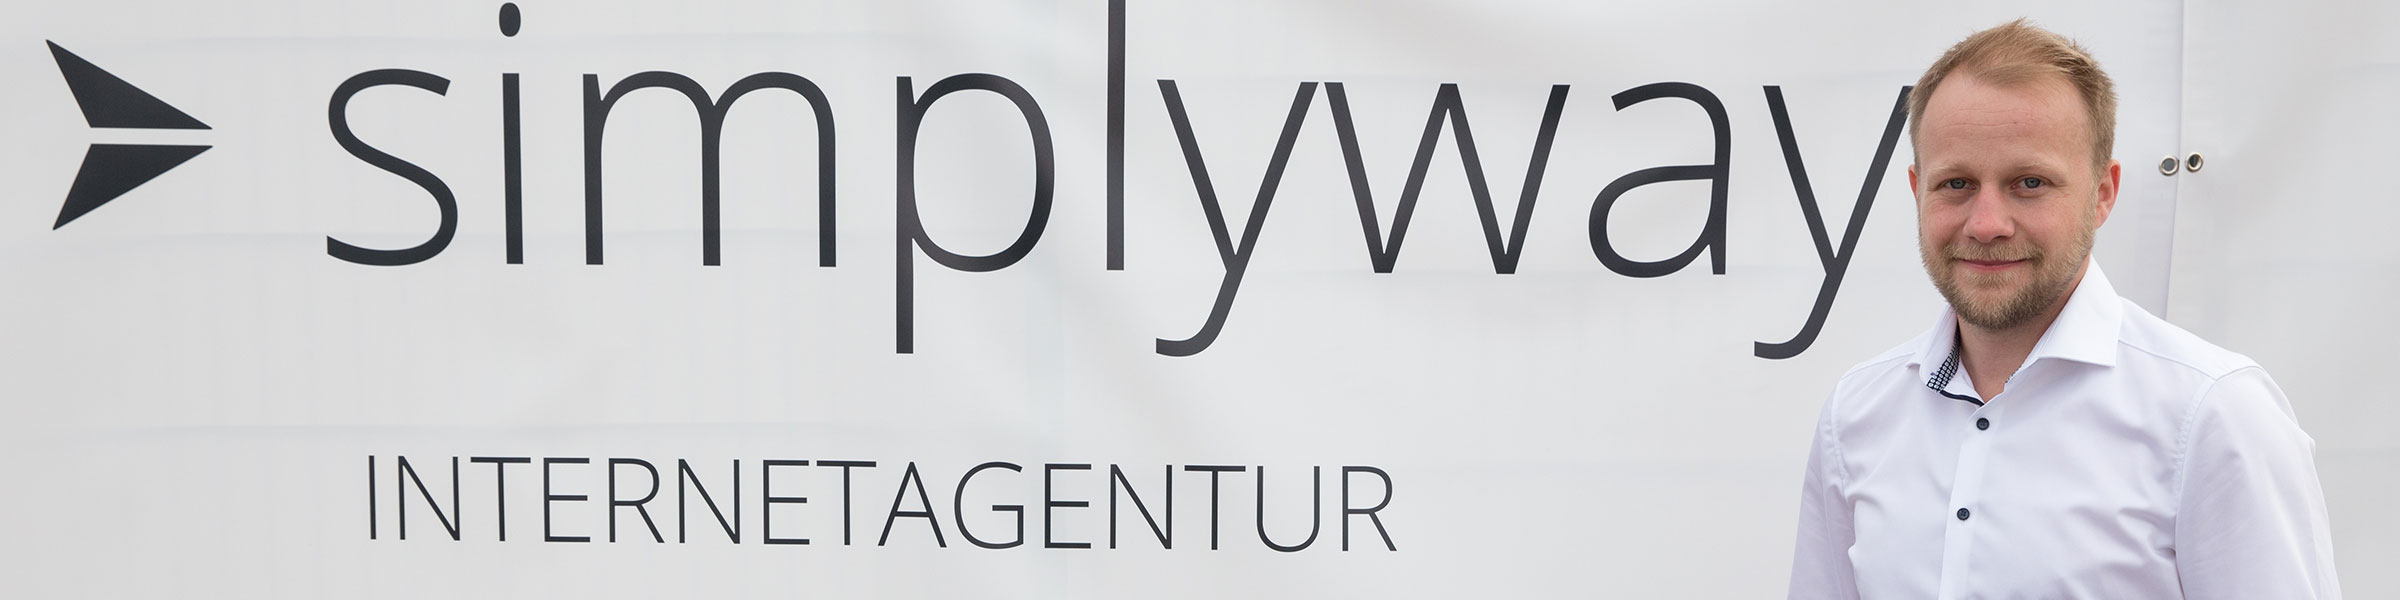 simplyway Banner